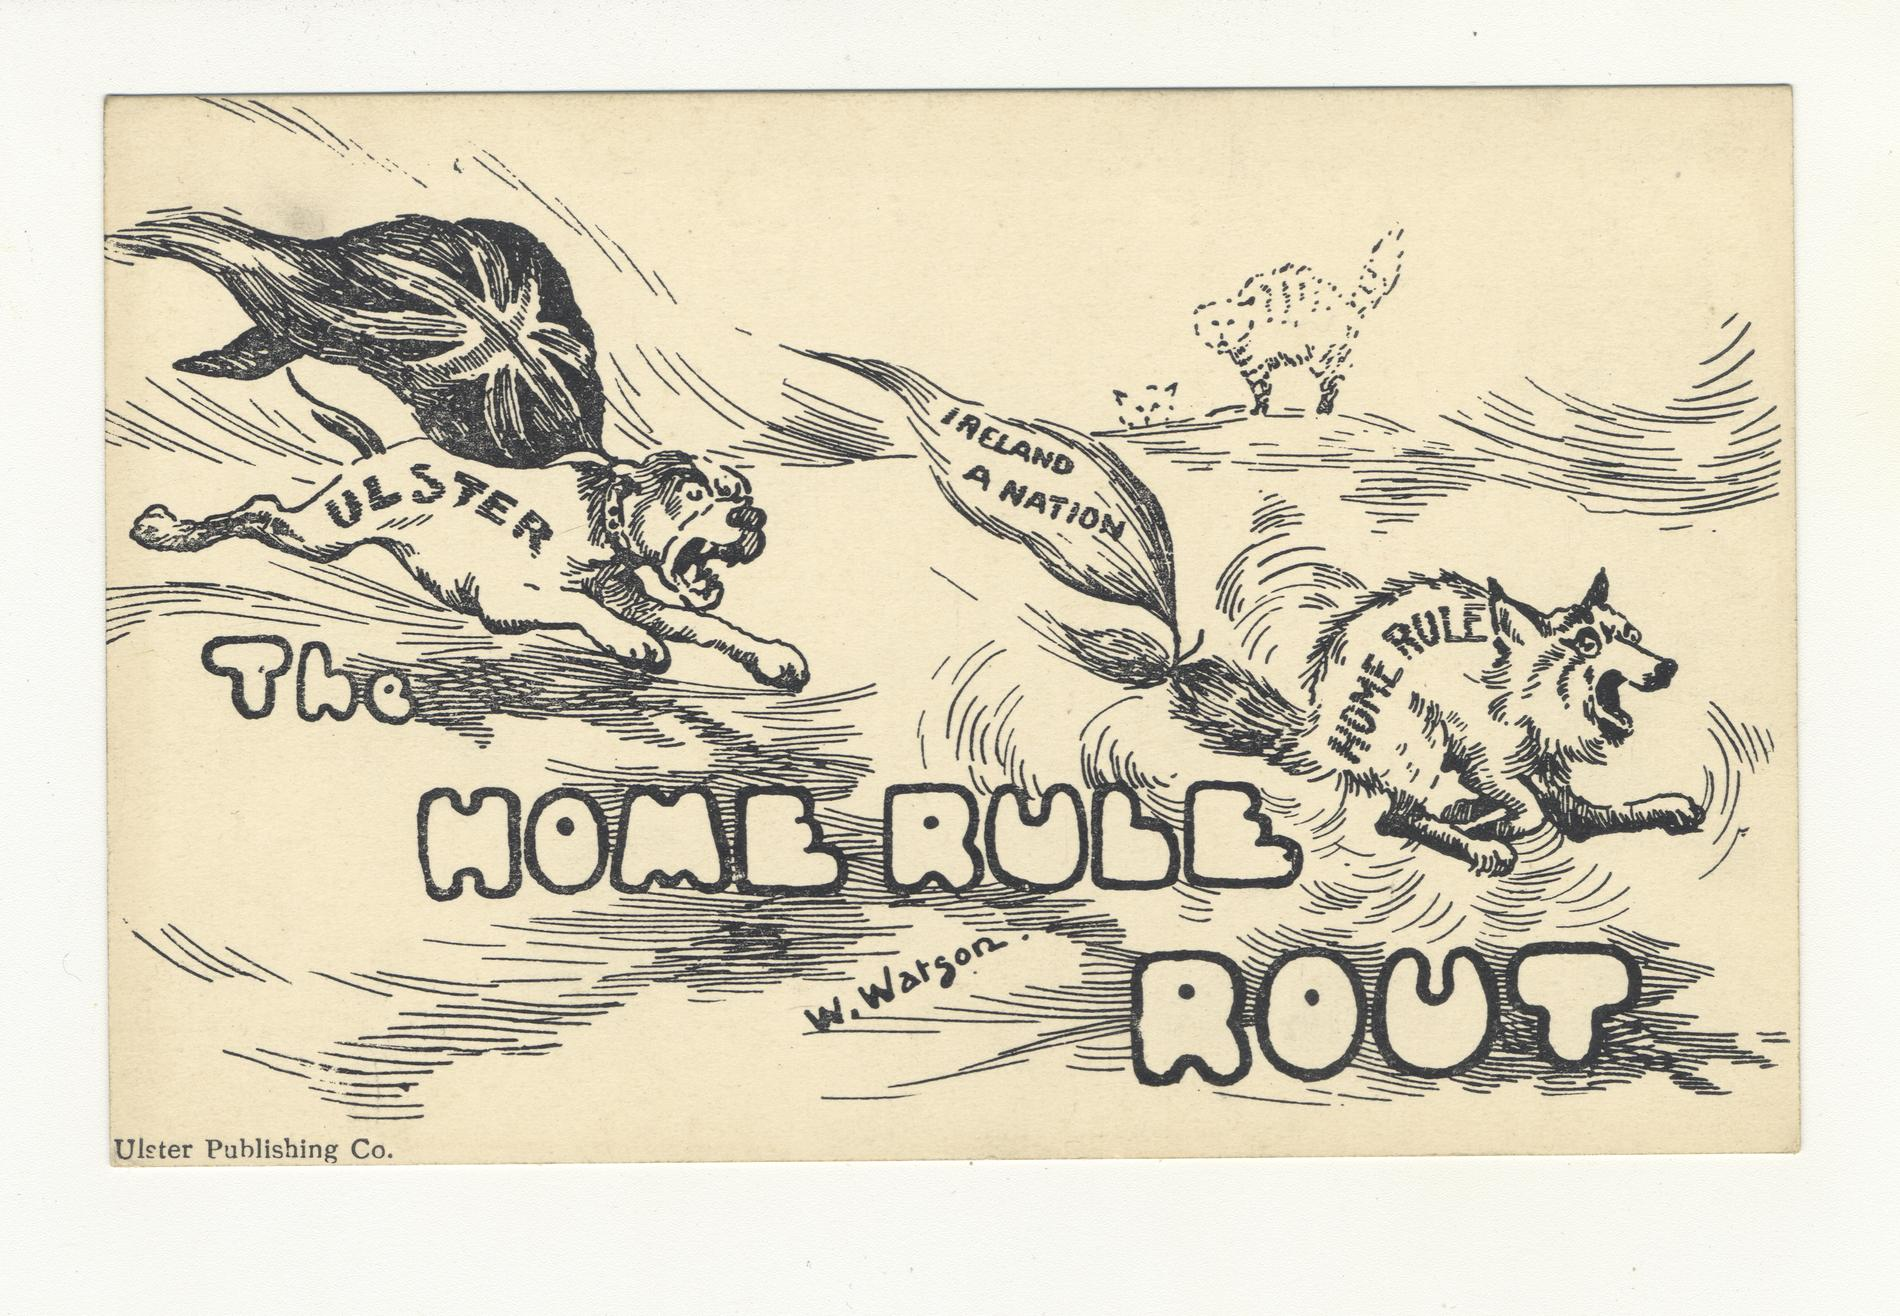 The Home Rule Rout (Postcard)